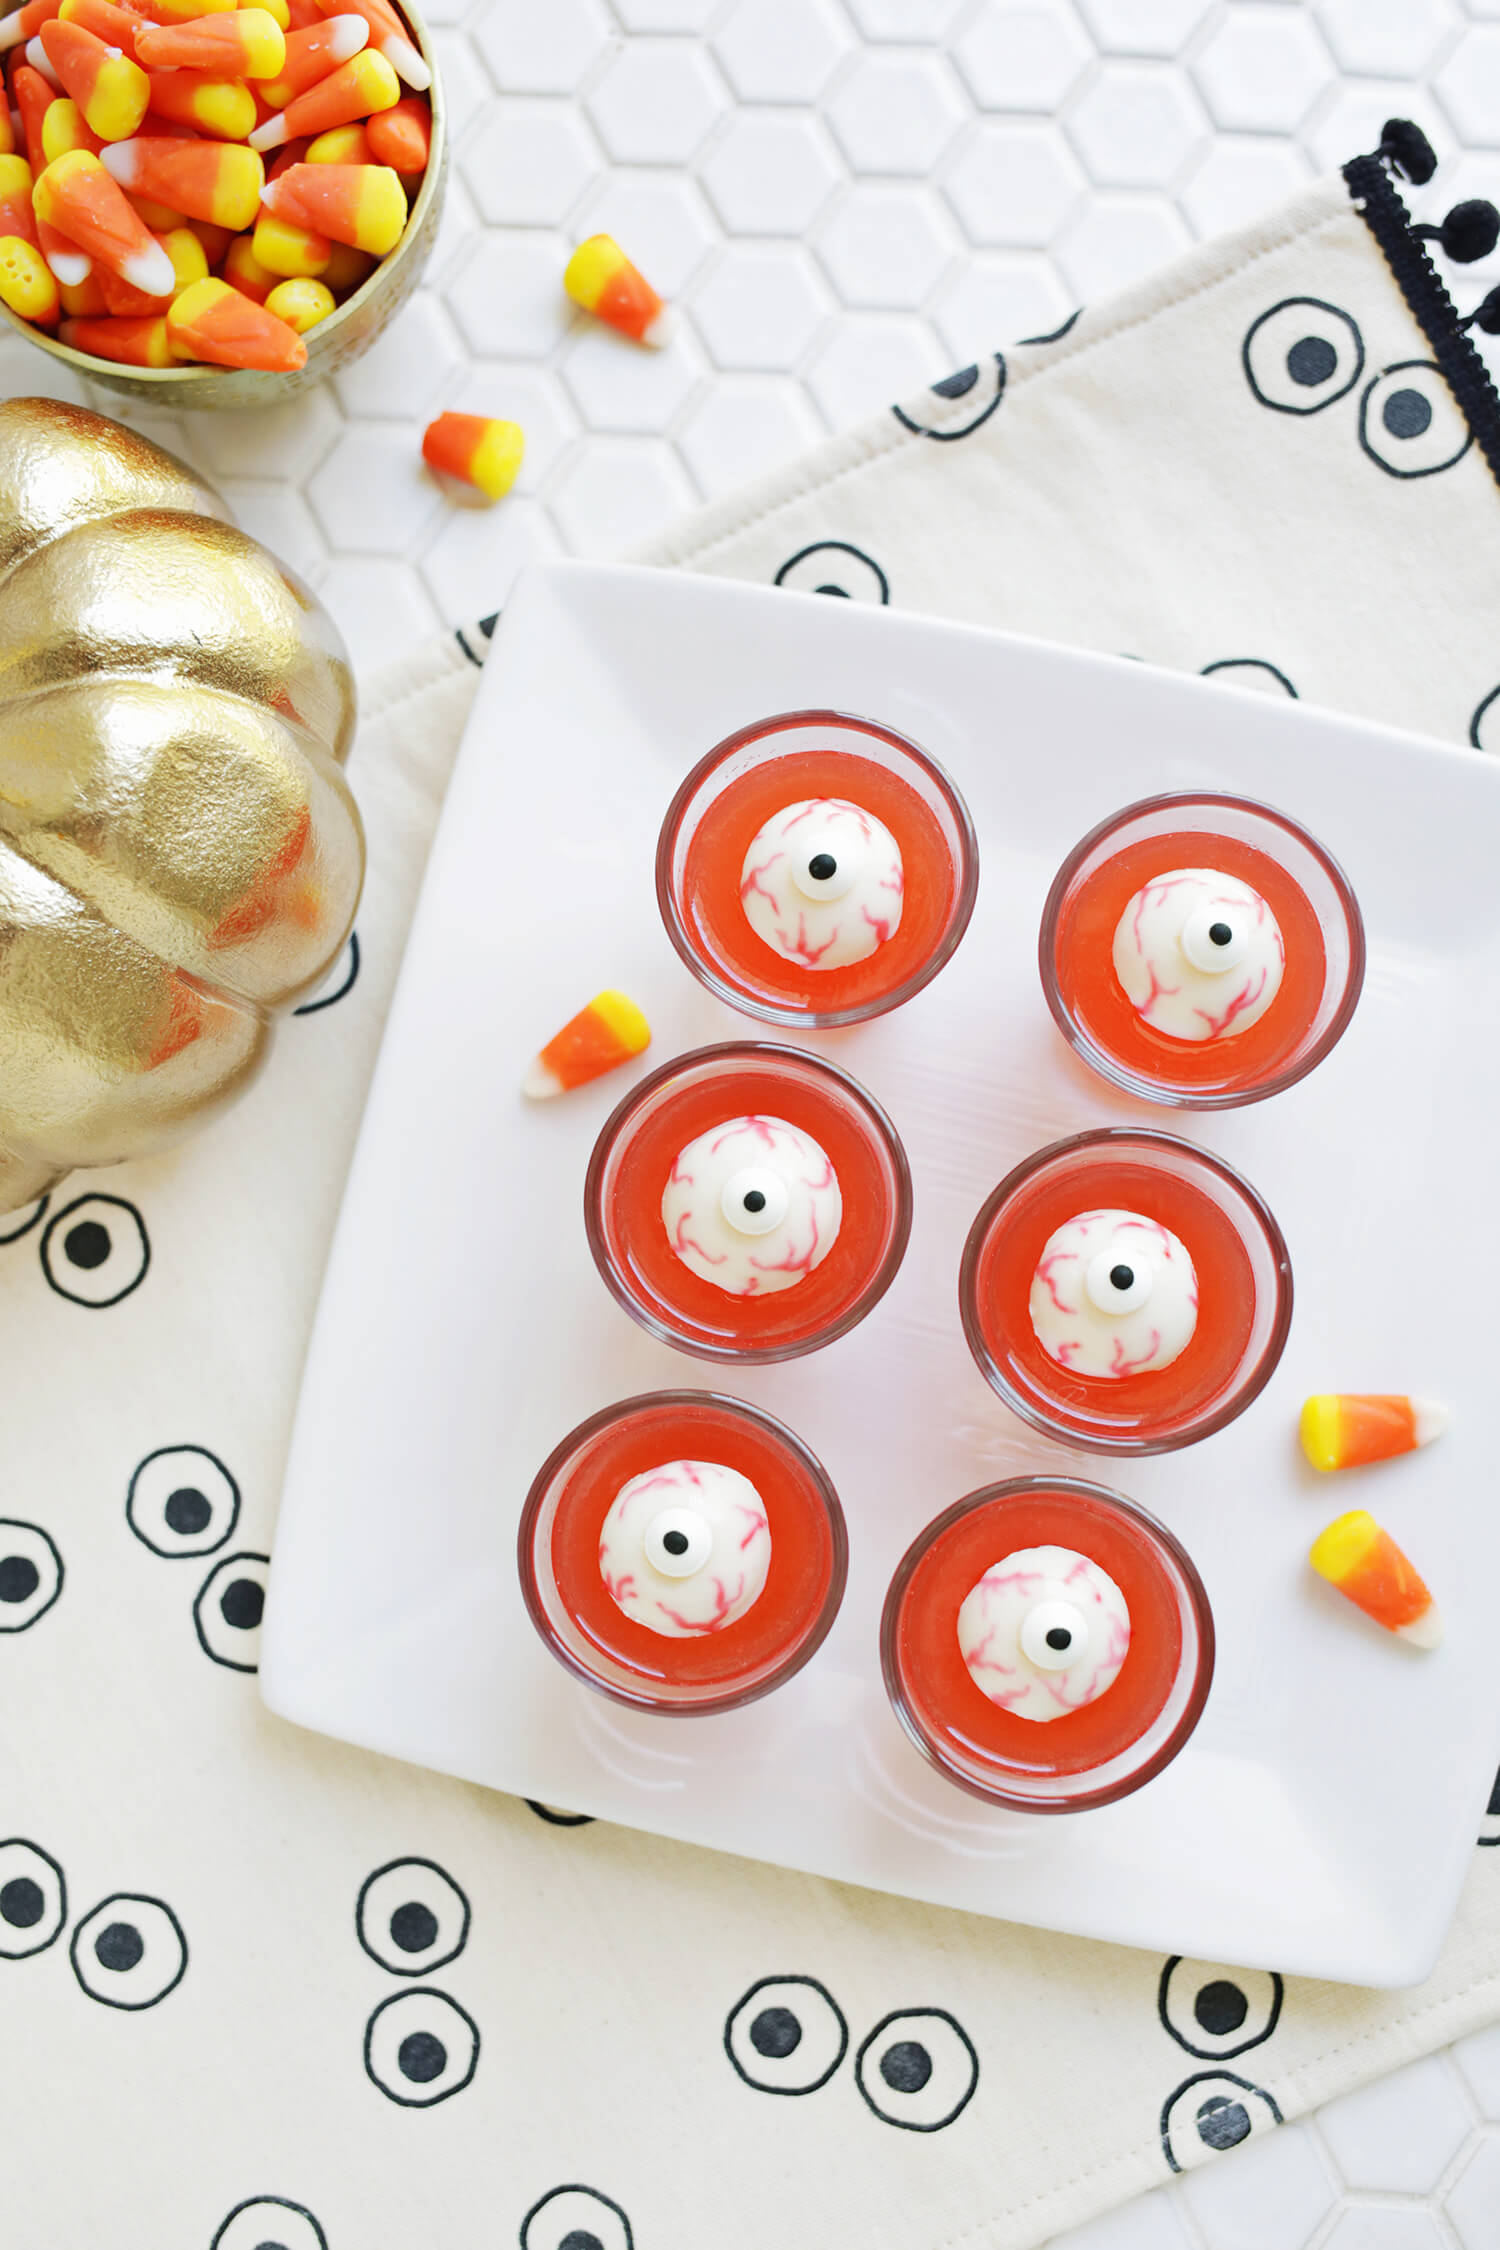 Eyeball jello shots